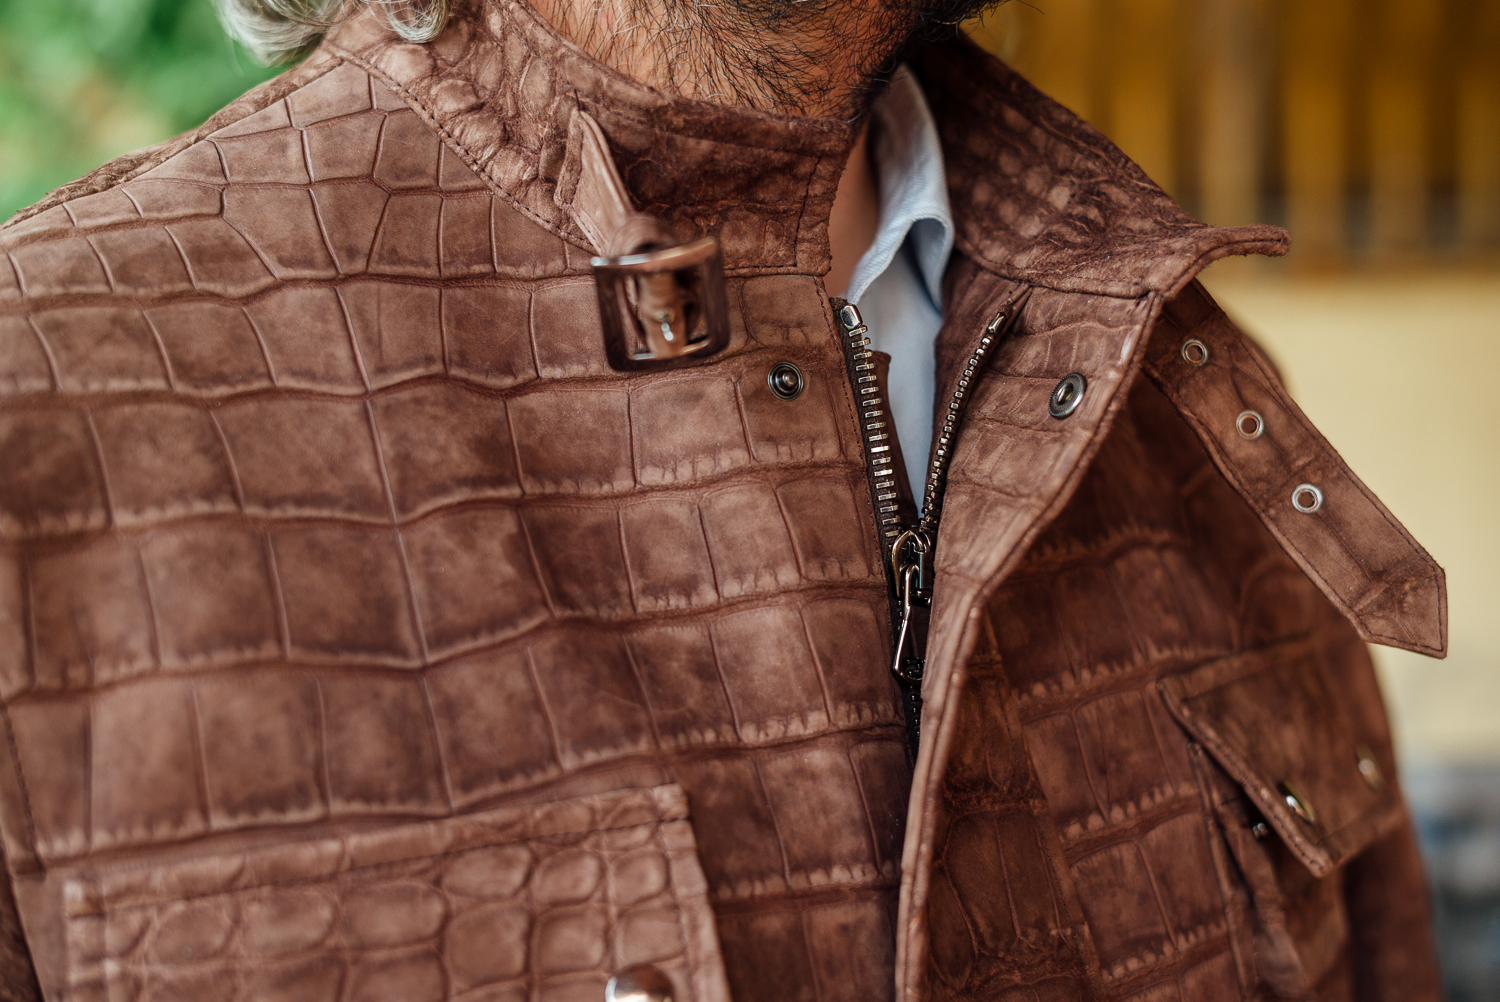 Brown suede alligator motorcycle jacket-matteo-perin.jpg